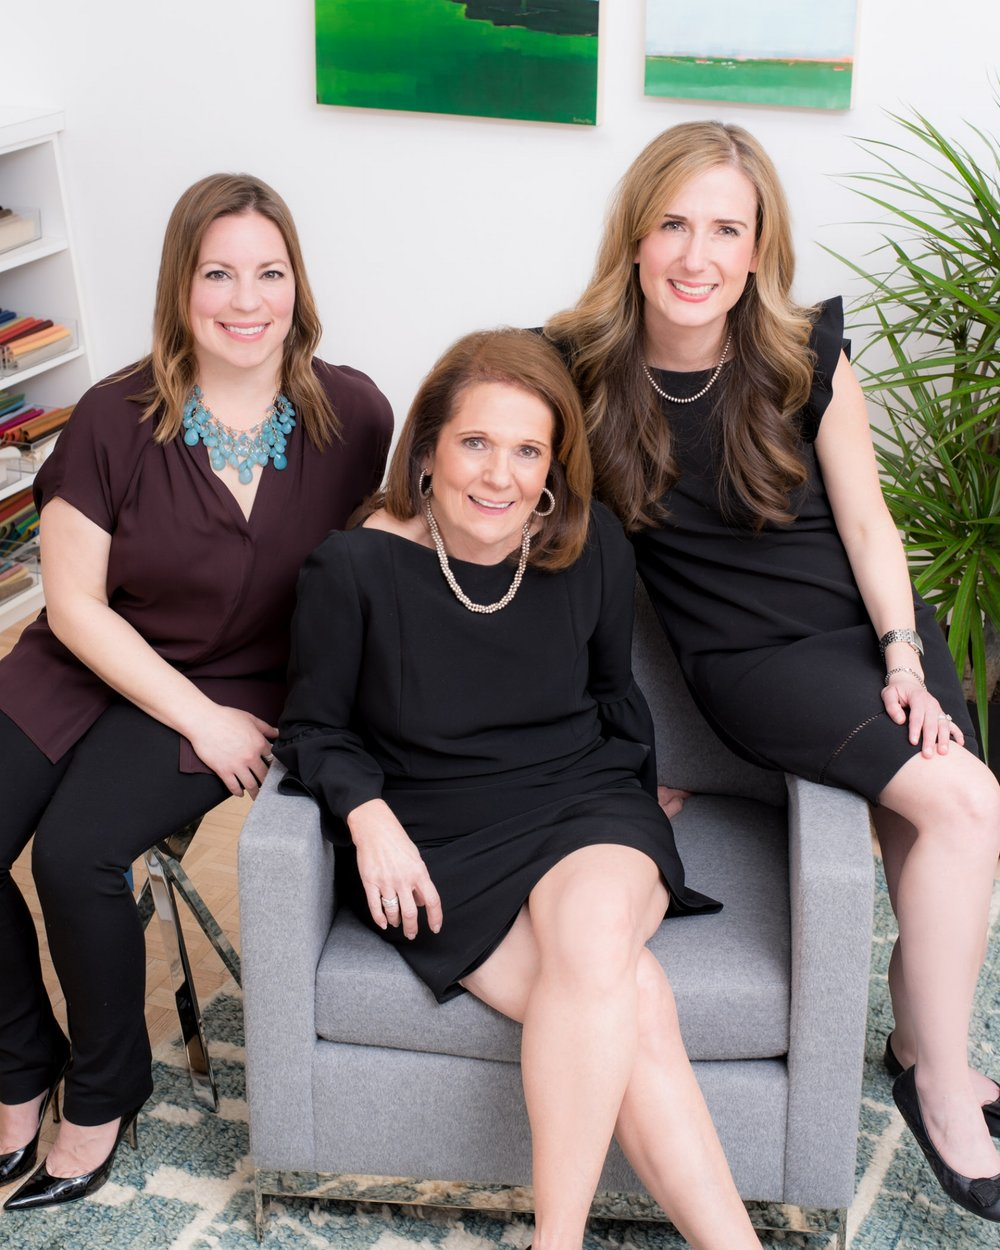 Chester Hoffmann & Associates Interior Design Team from left to right; Sarah Maloney (Interior Designer), Jean Hoffmann (Principal, Interior Designer), Kate Hoffmann (Business Manager)